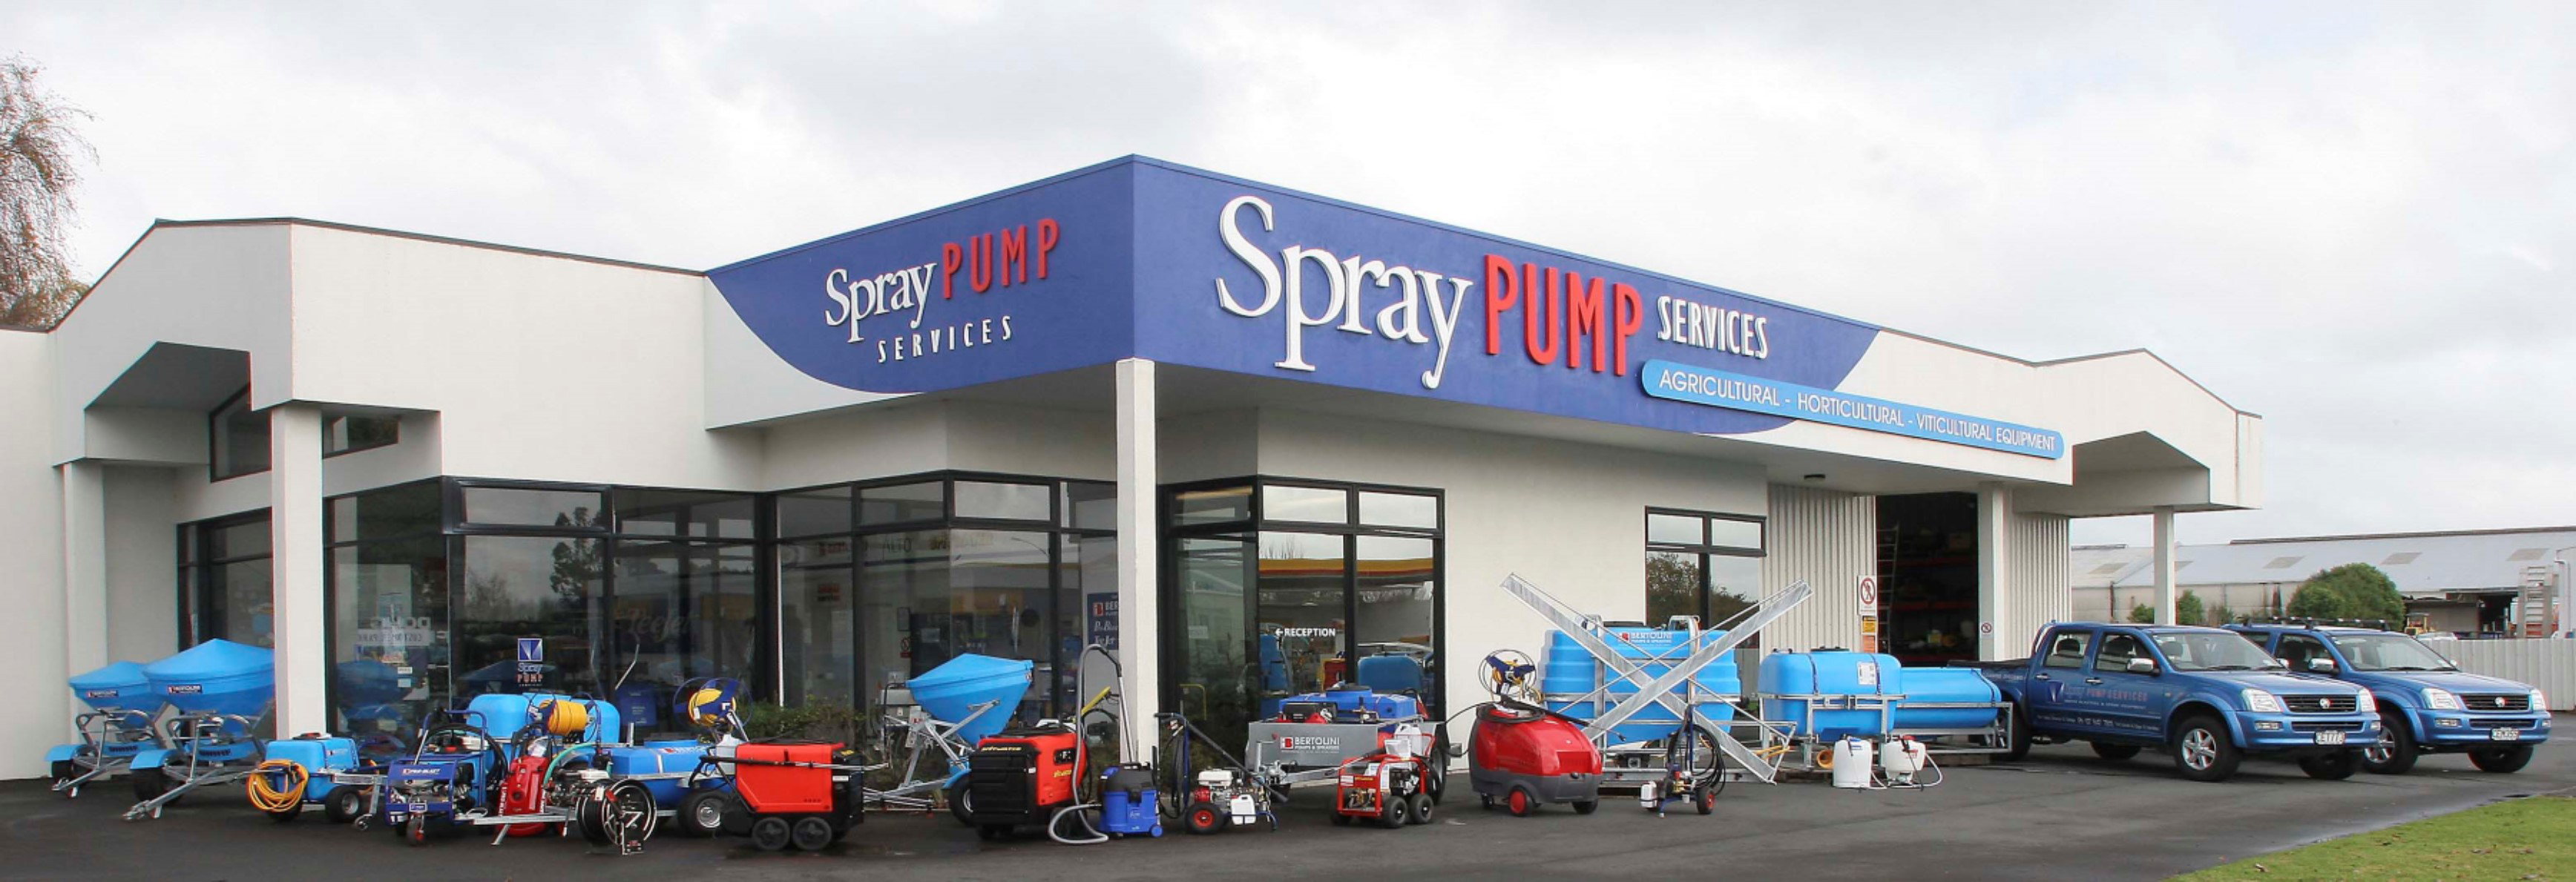 Spray Pump Services Building